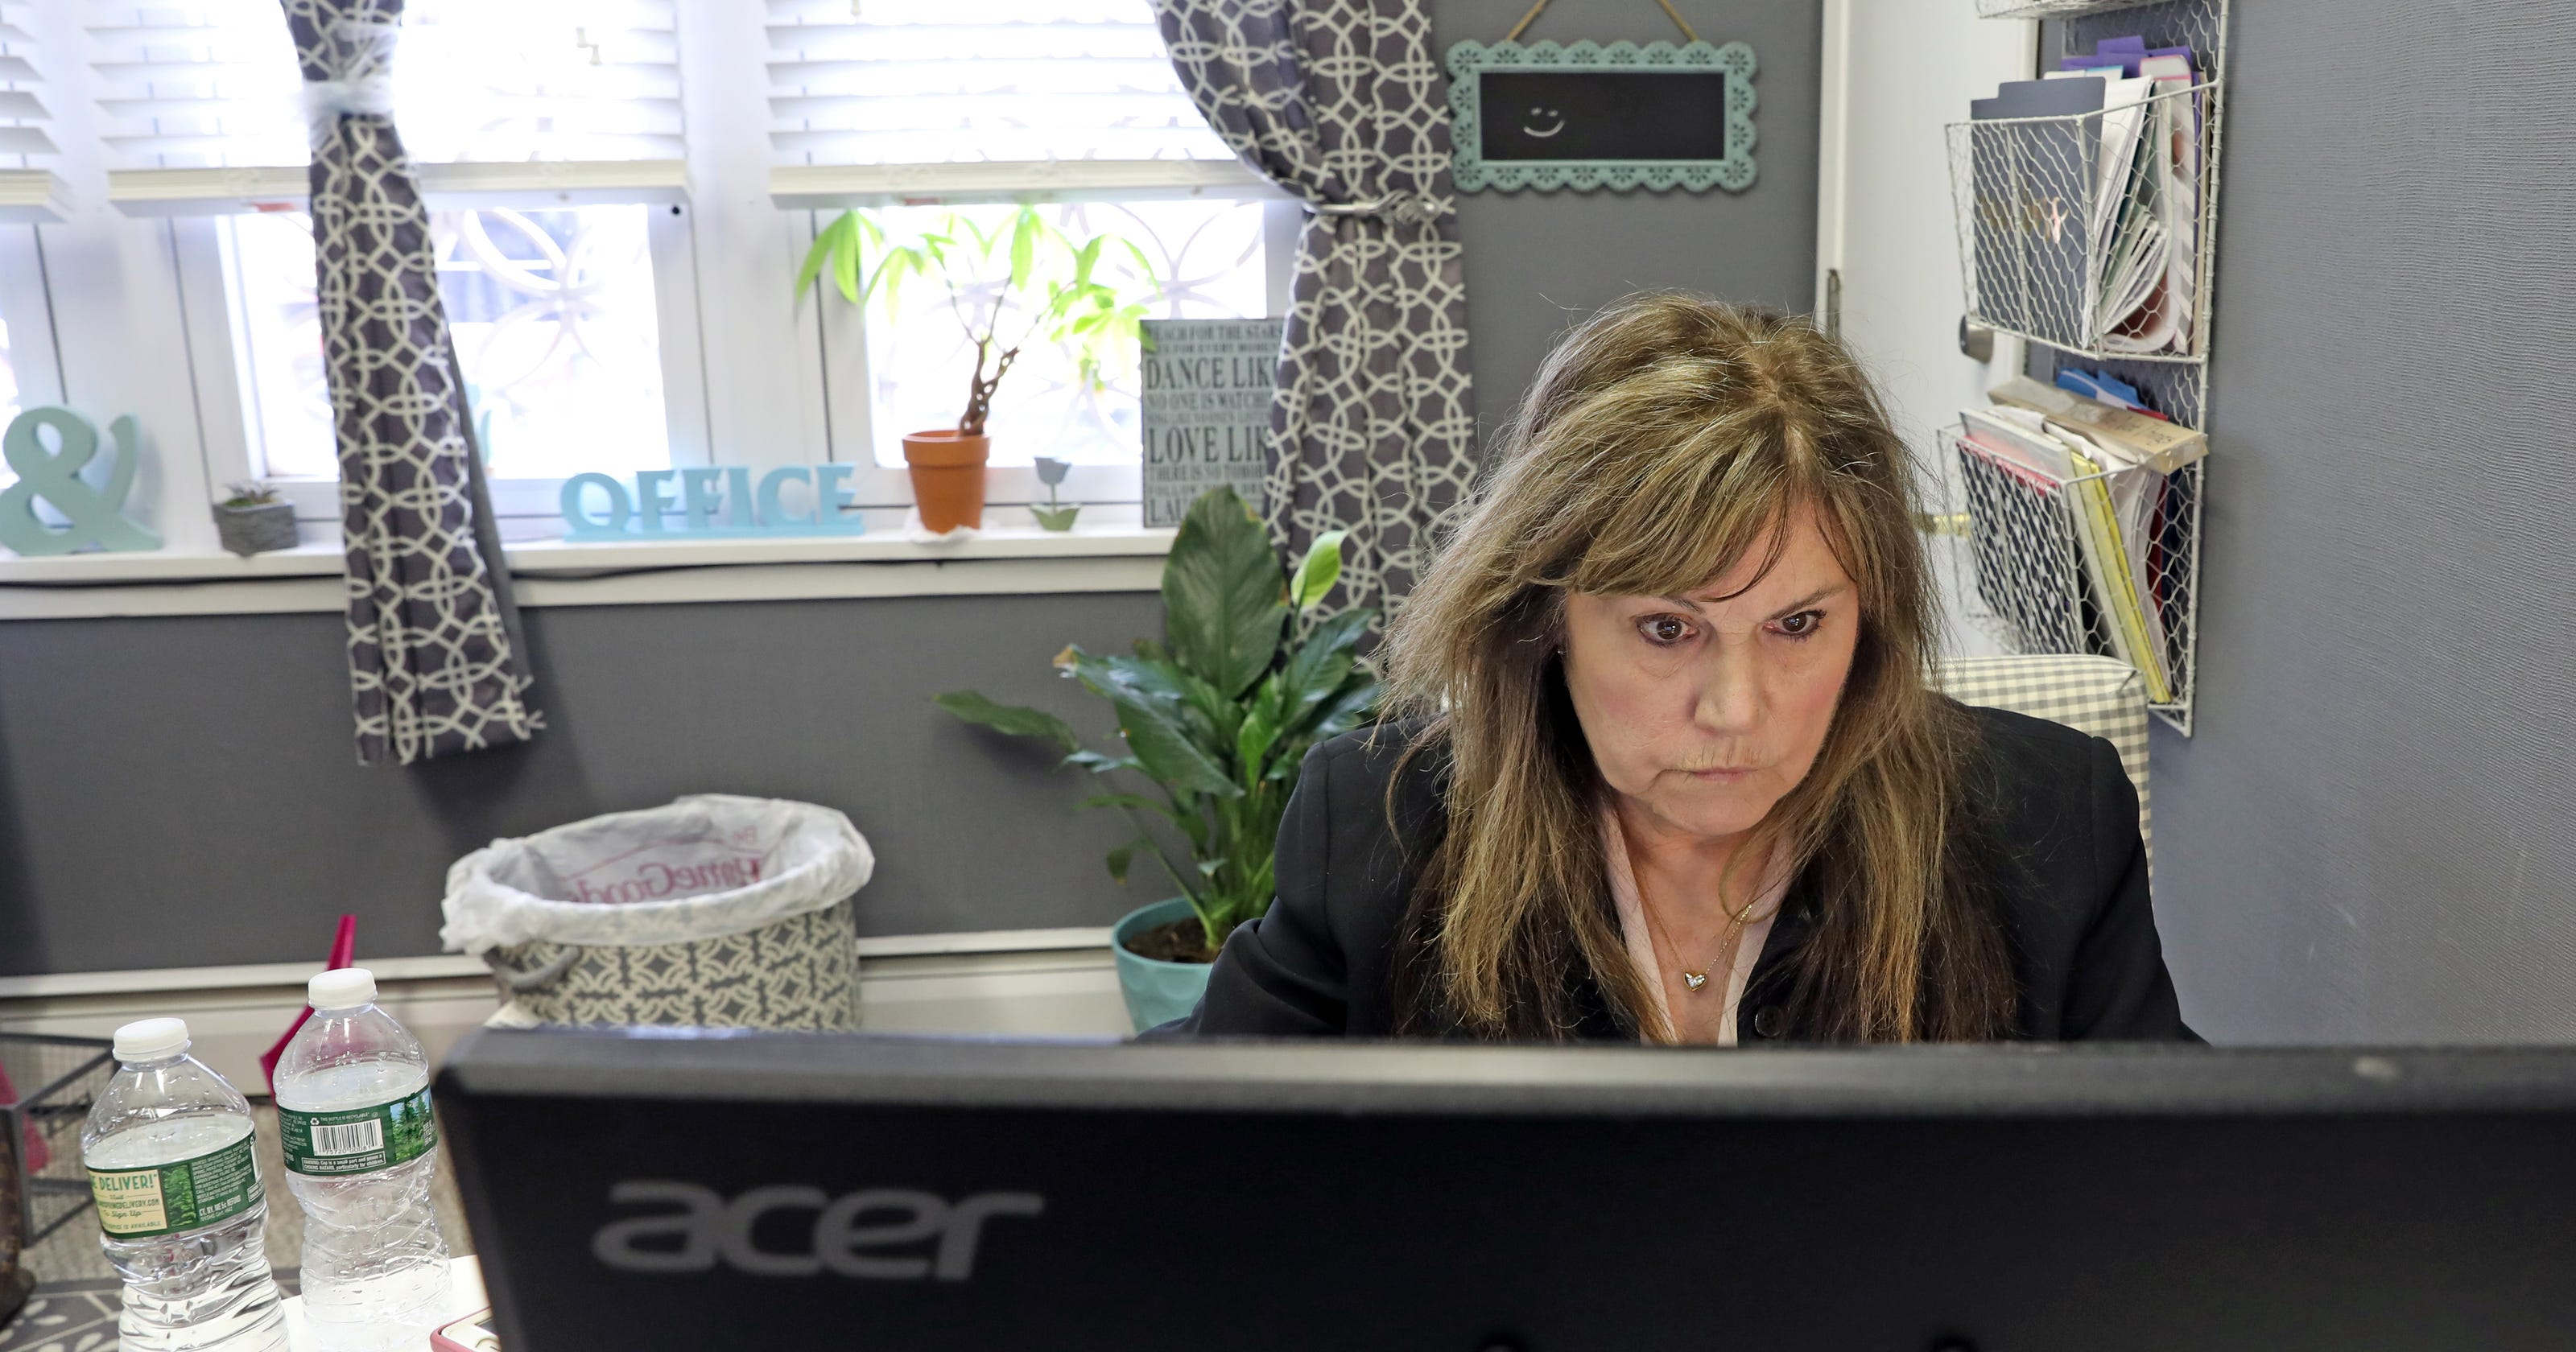 Cheating wives, scammers: Woman private investigator tracks them